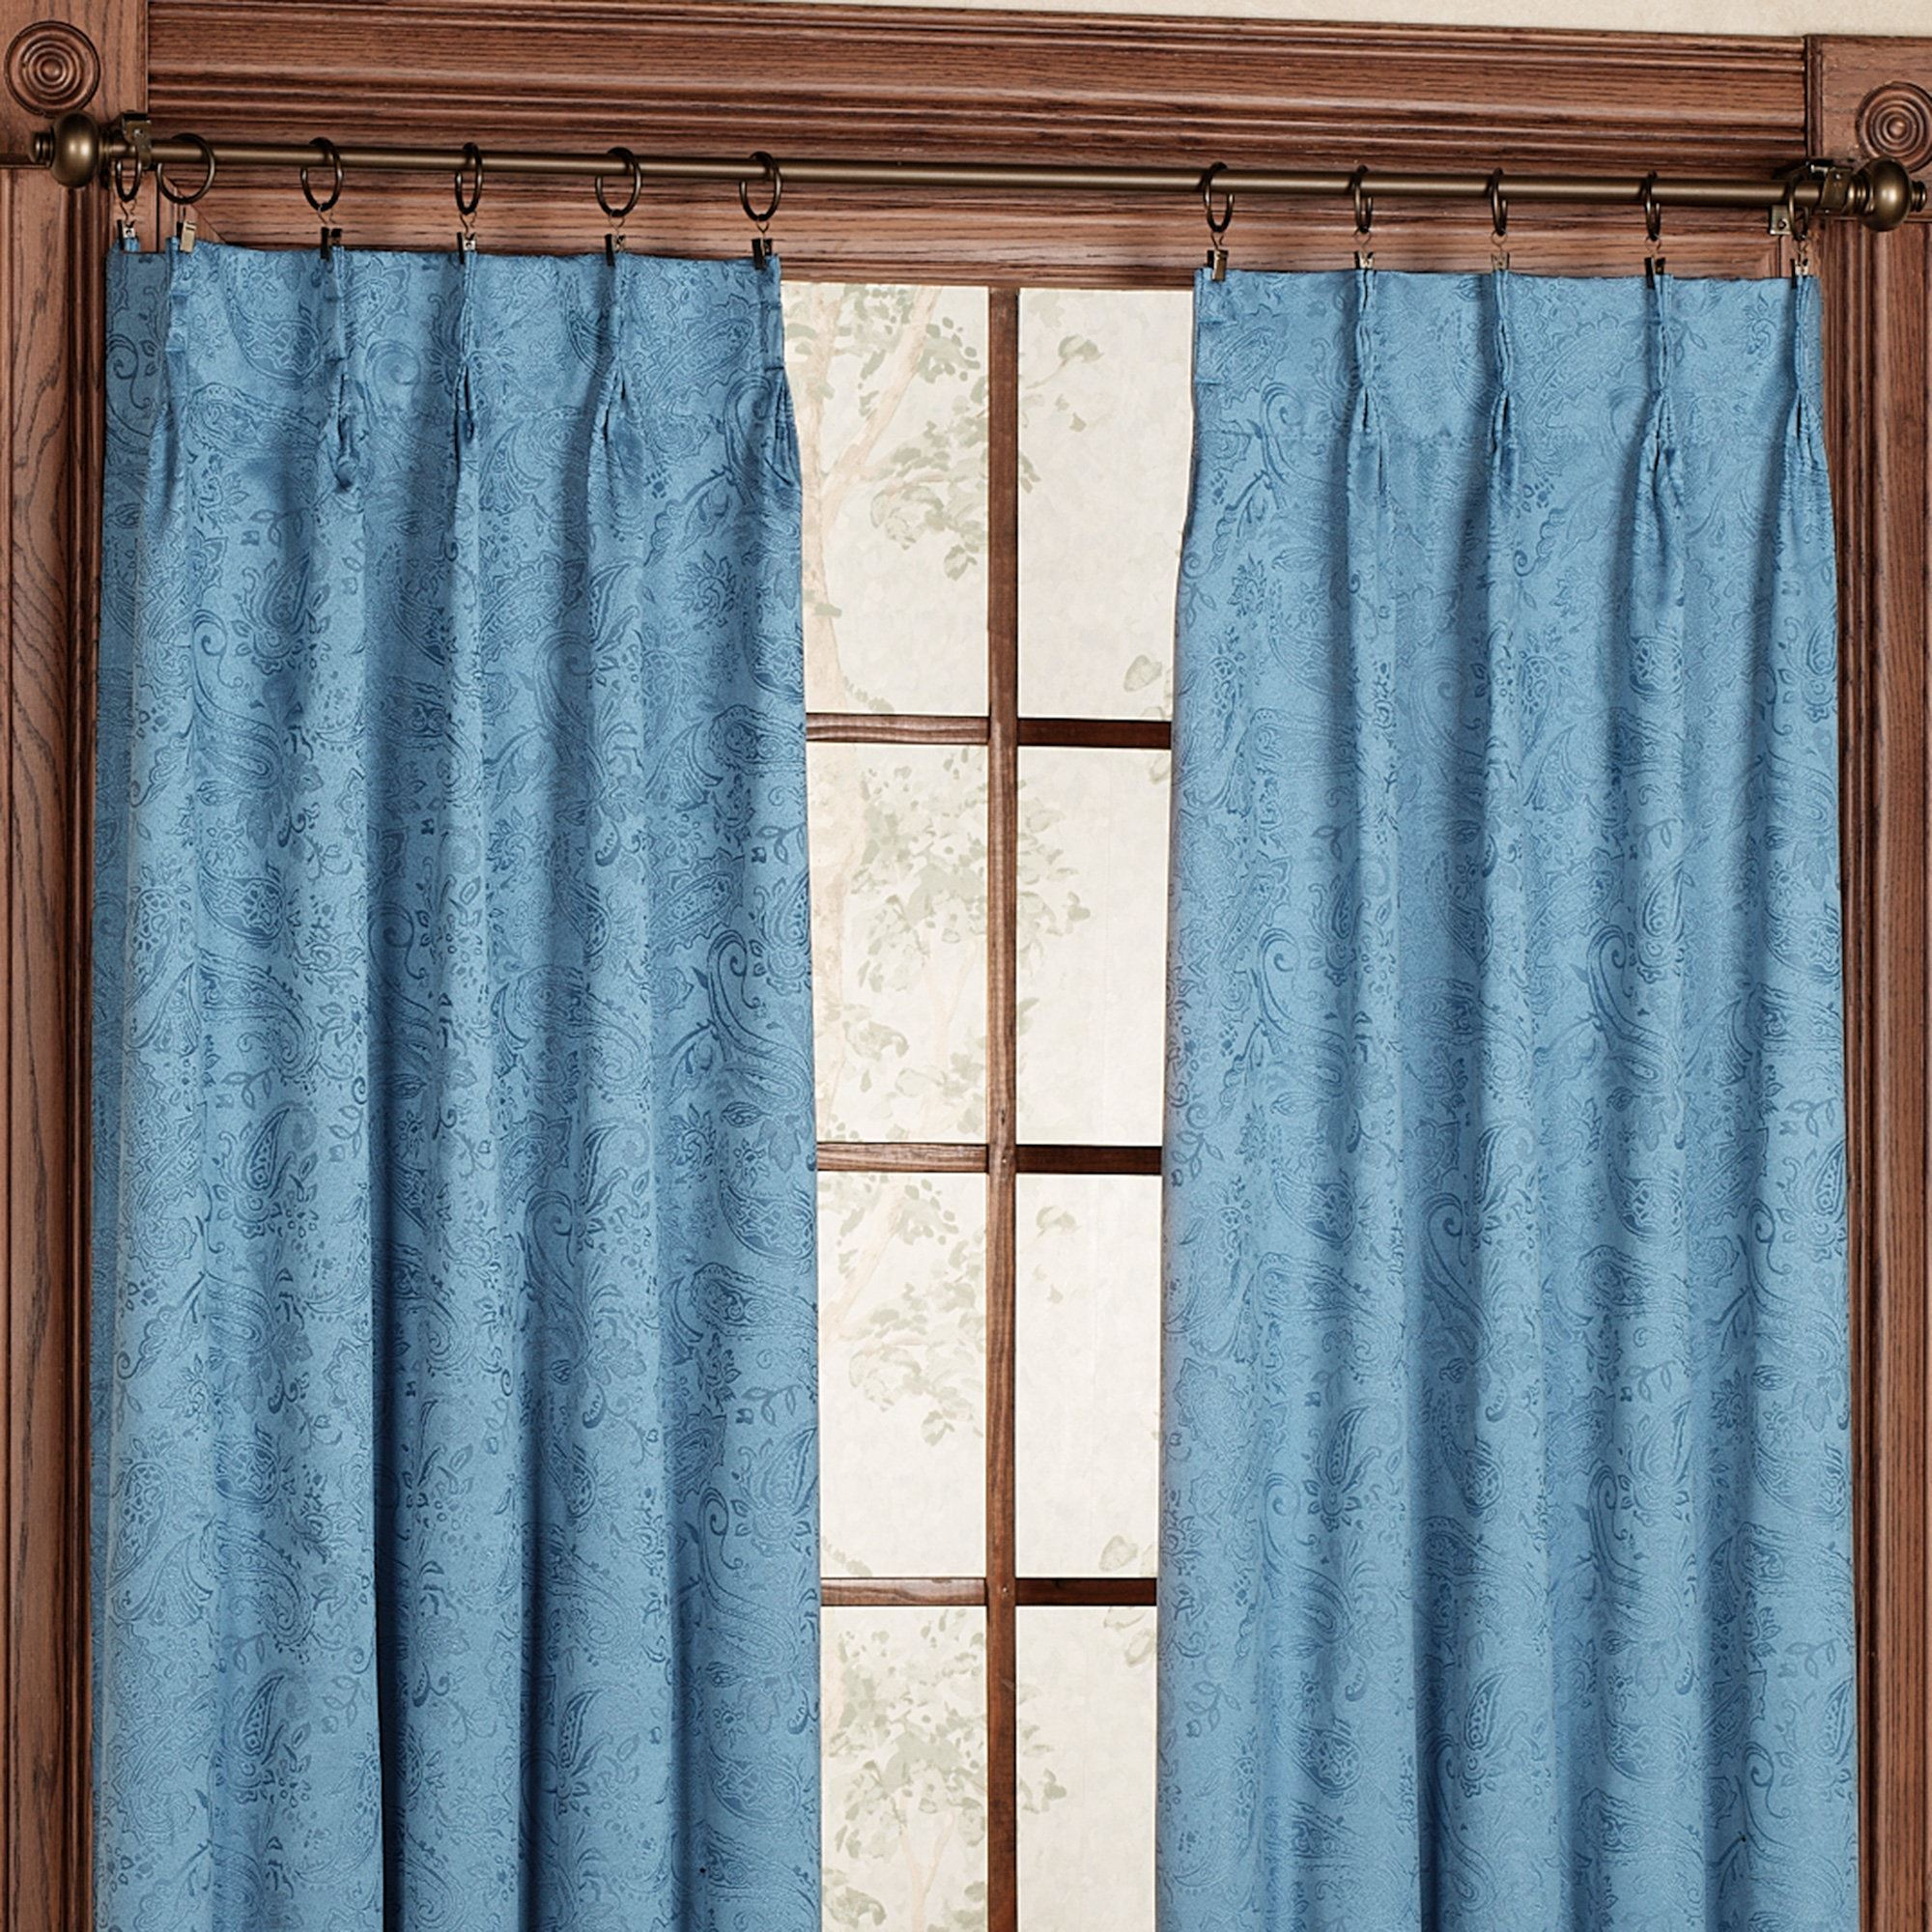 Pinch Pleat Drapes Traverse Rod | Home Design Ideas Throughout Signature Pinch Pleated Blackout Solid Velvet Curtain Panels (View 26 of 36)